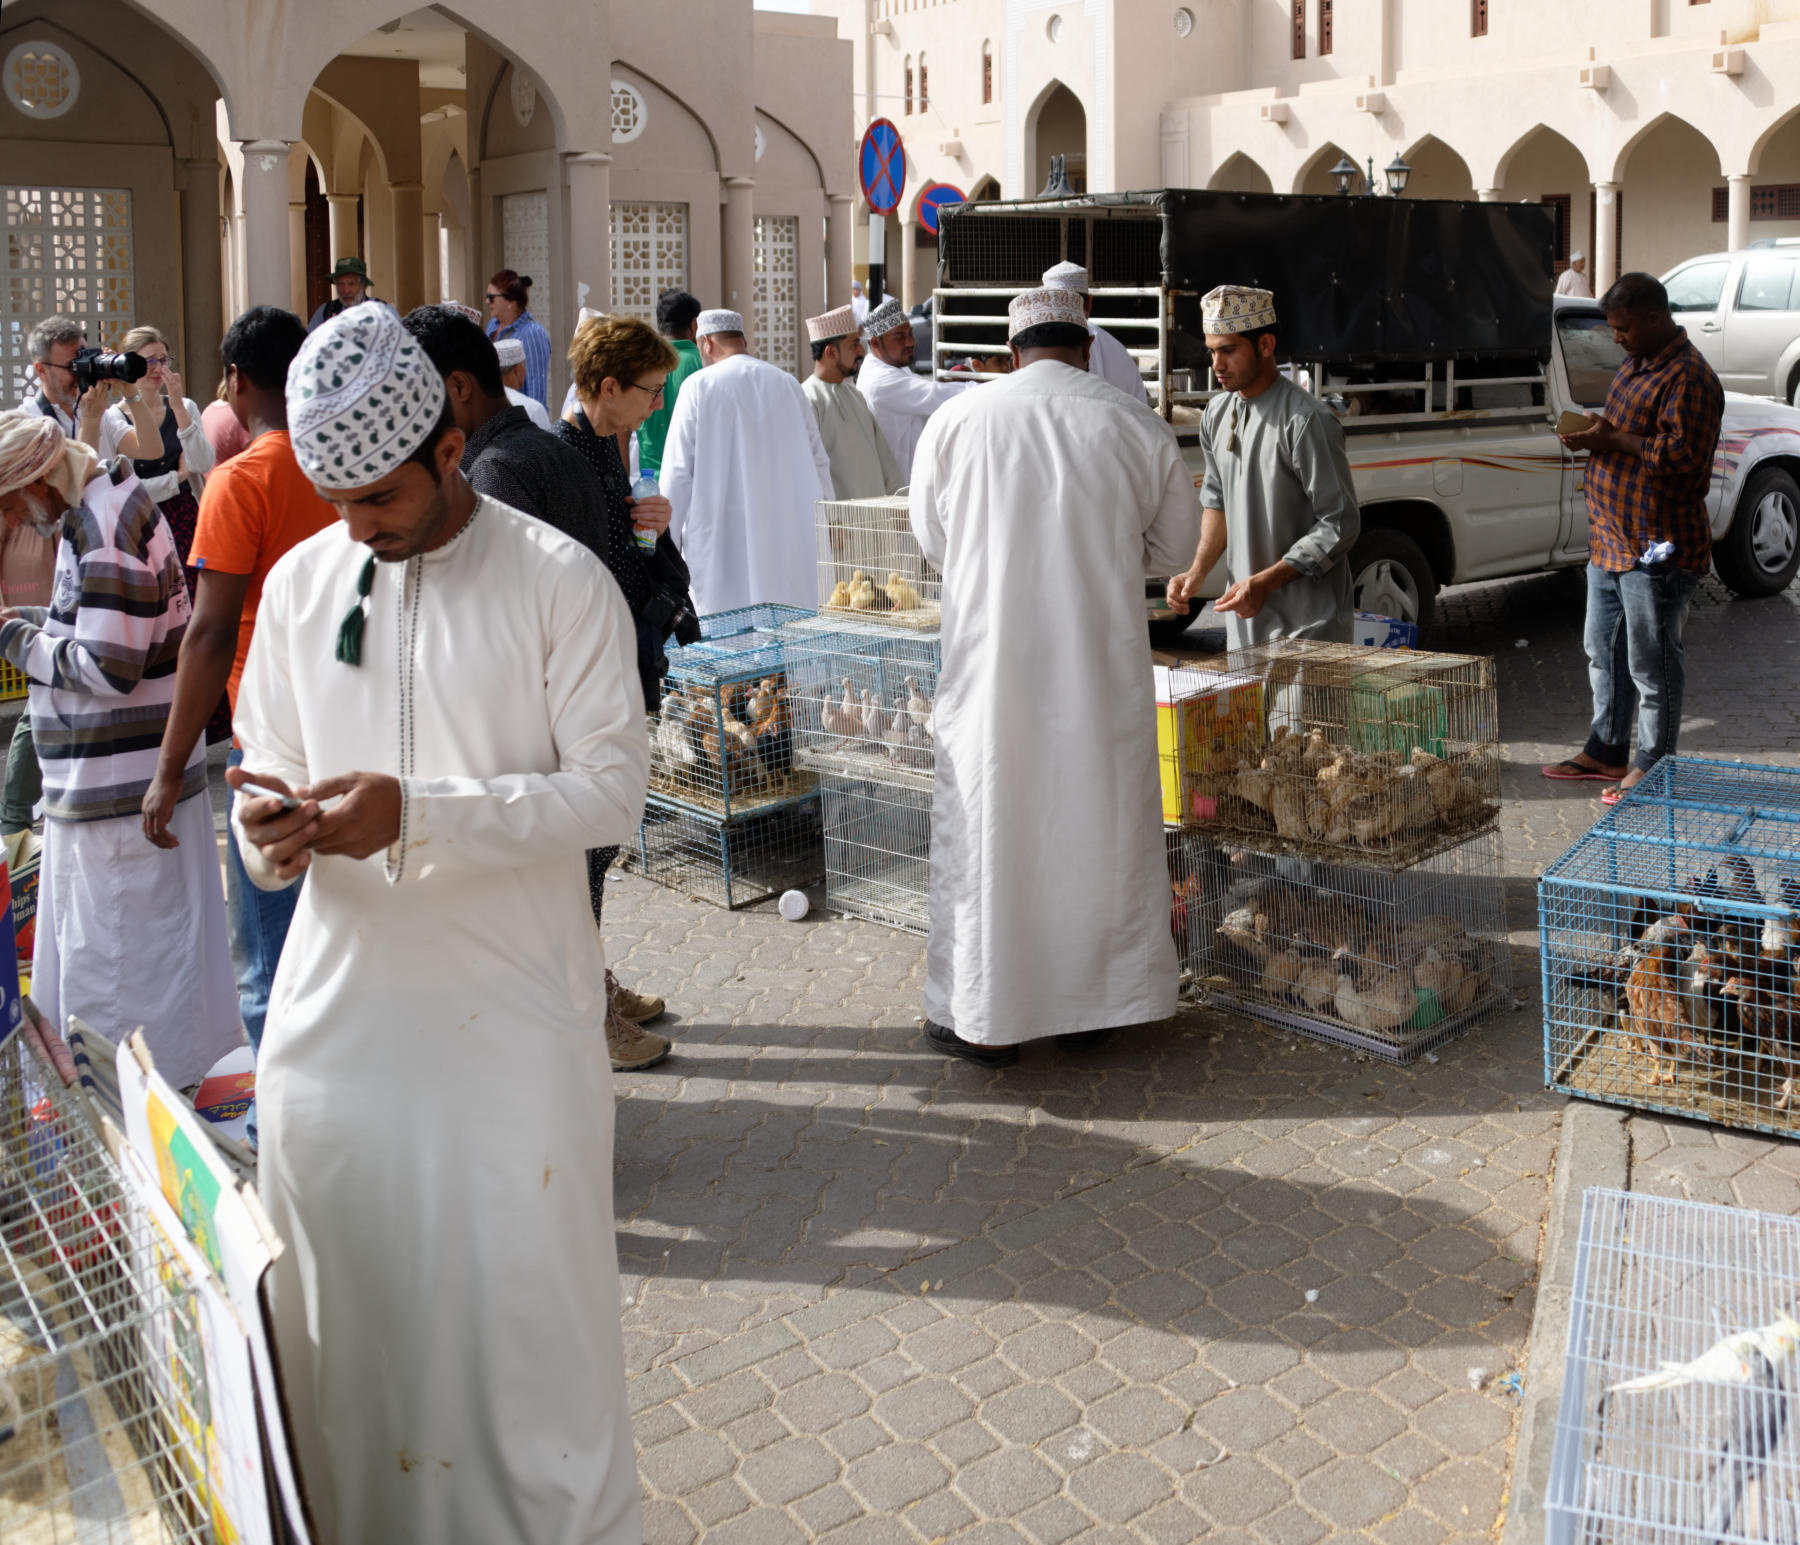 Buying and Selling animals, Nizwa Souq, Oman